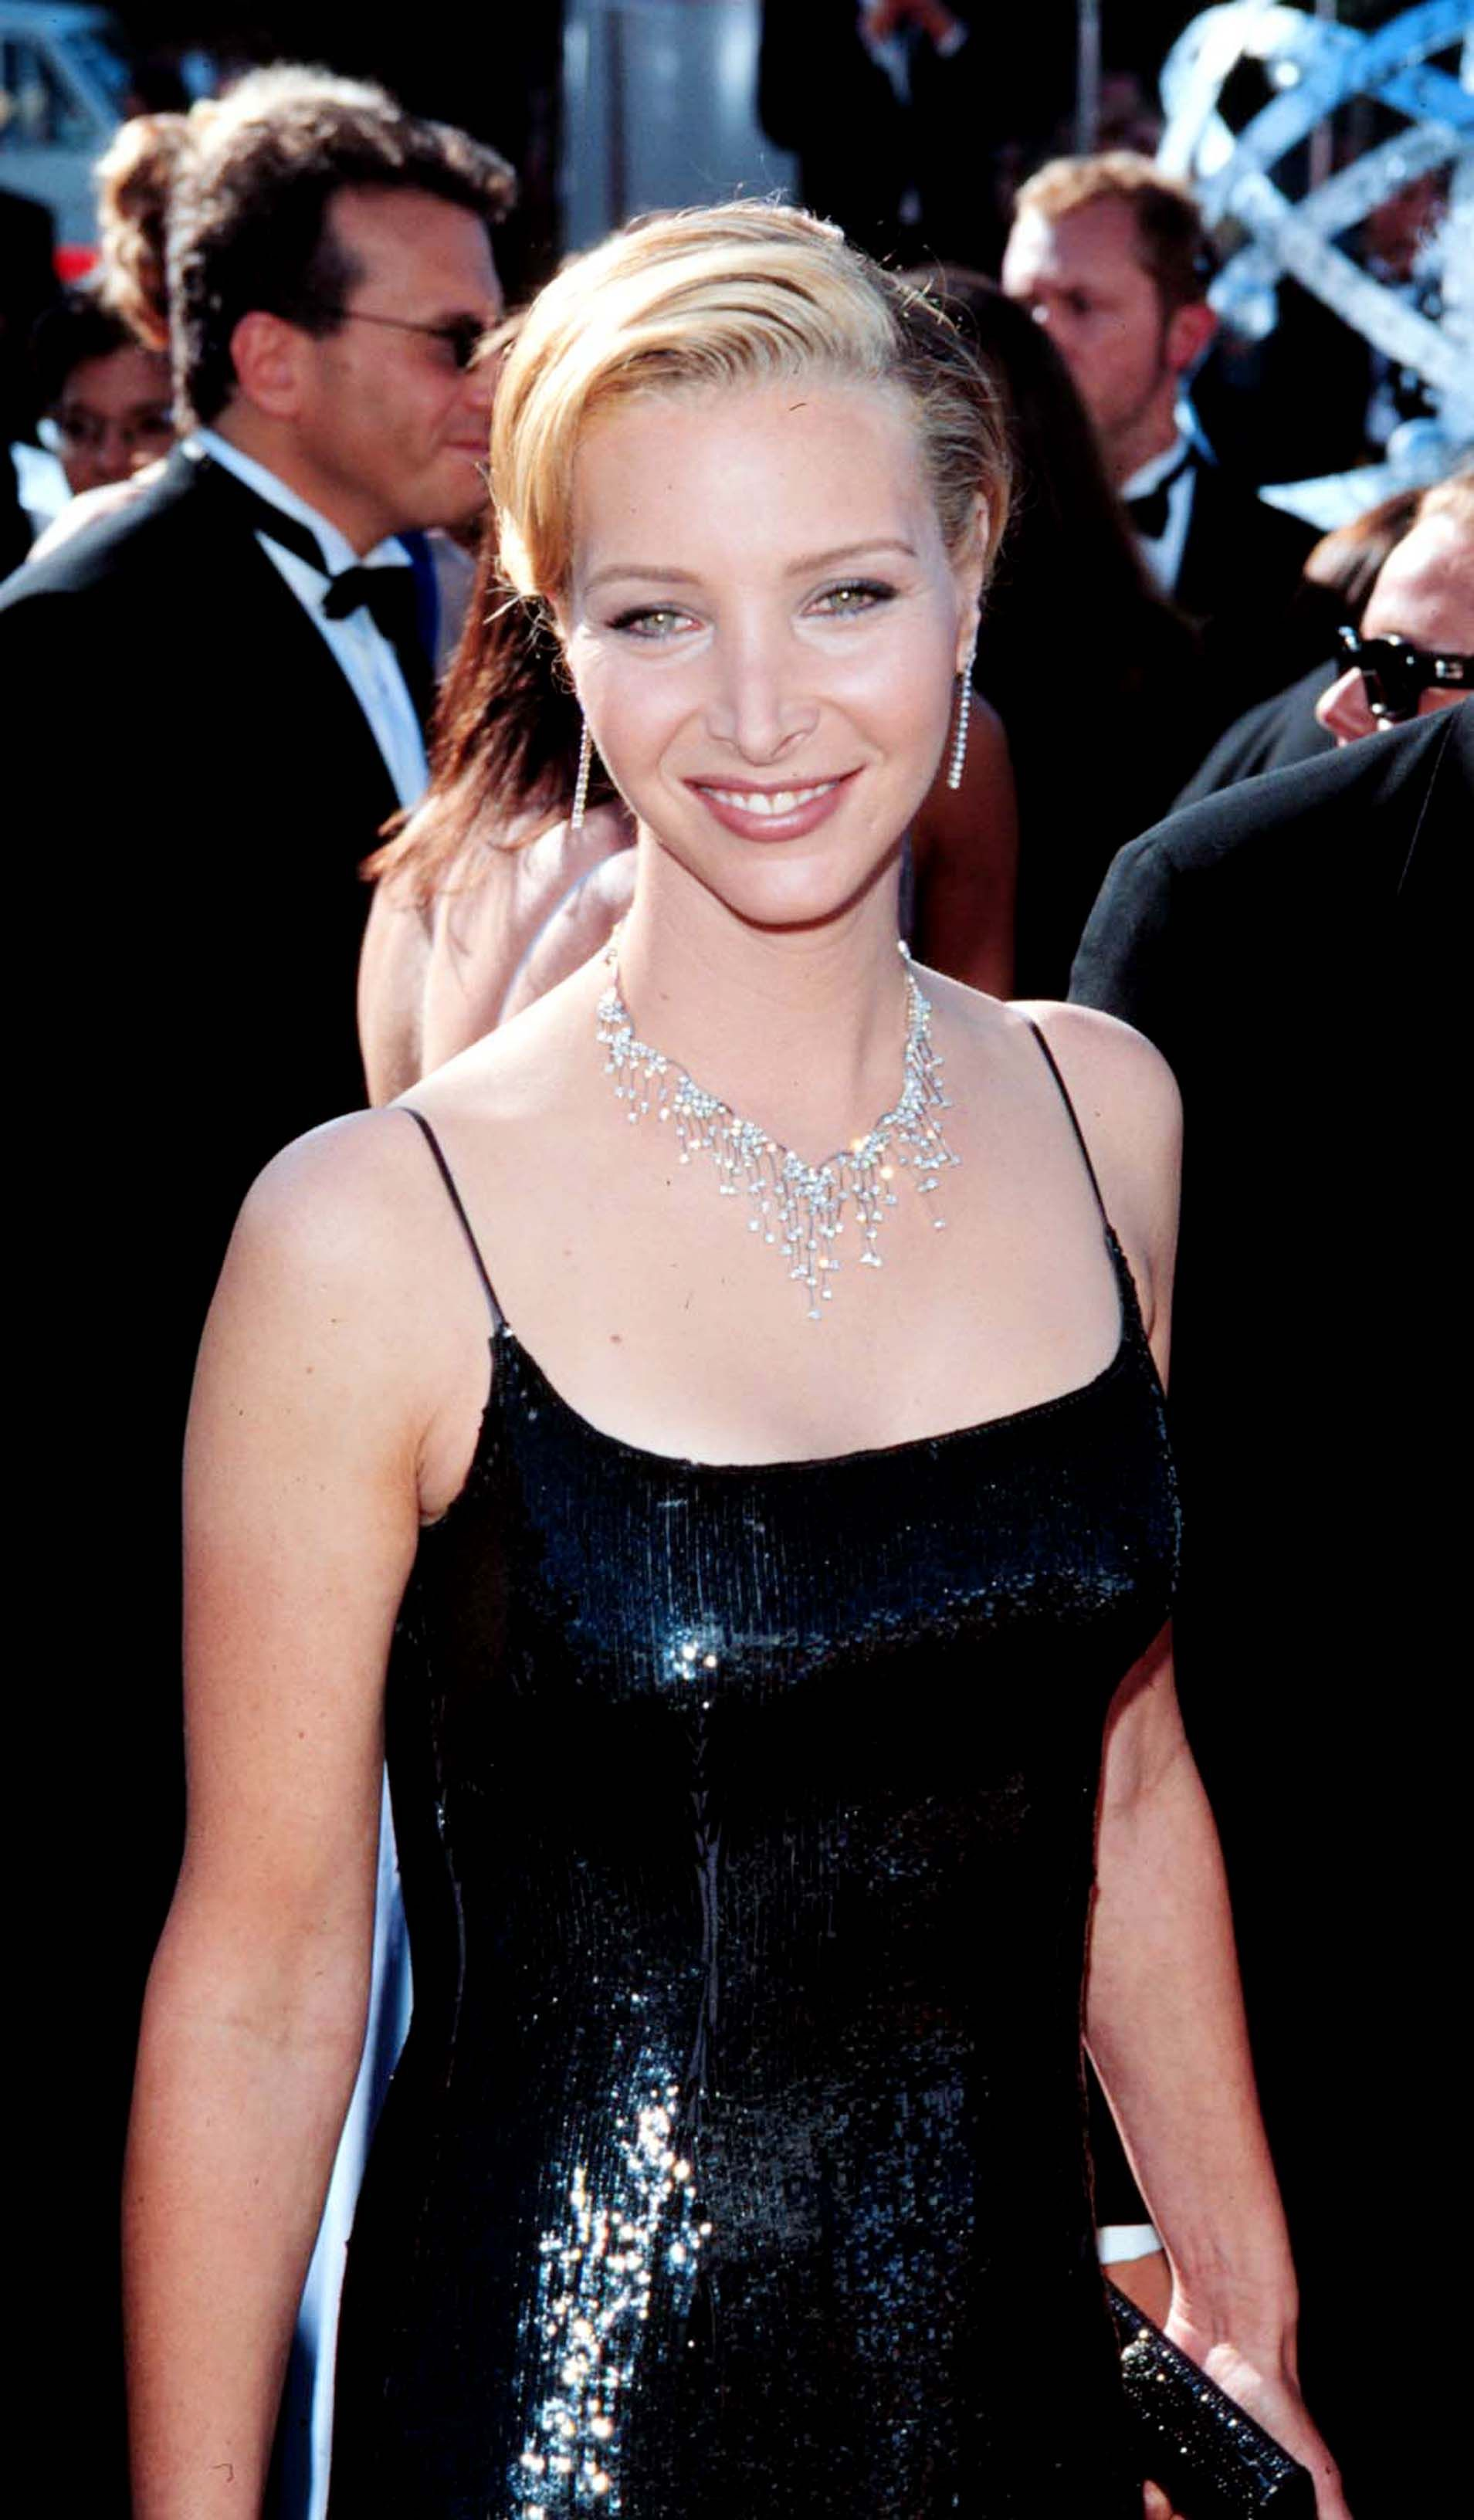 50 Jewelry Styles from the '90s - Chokers, Earrings, Arm